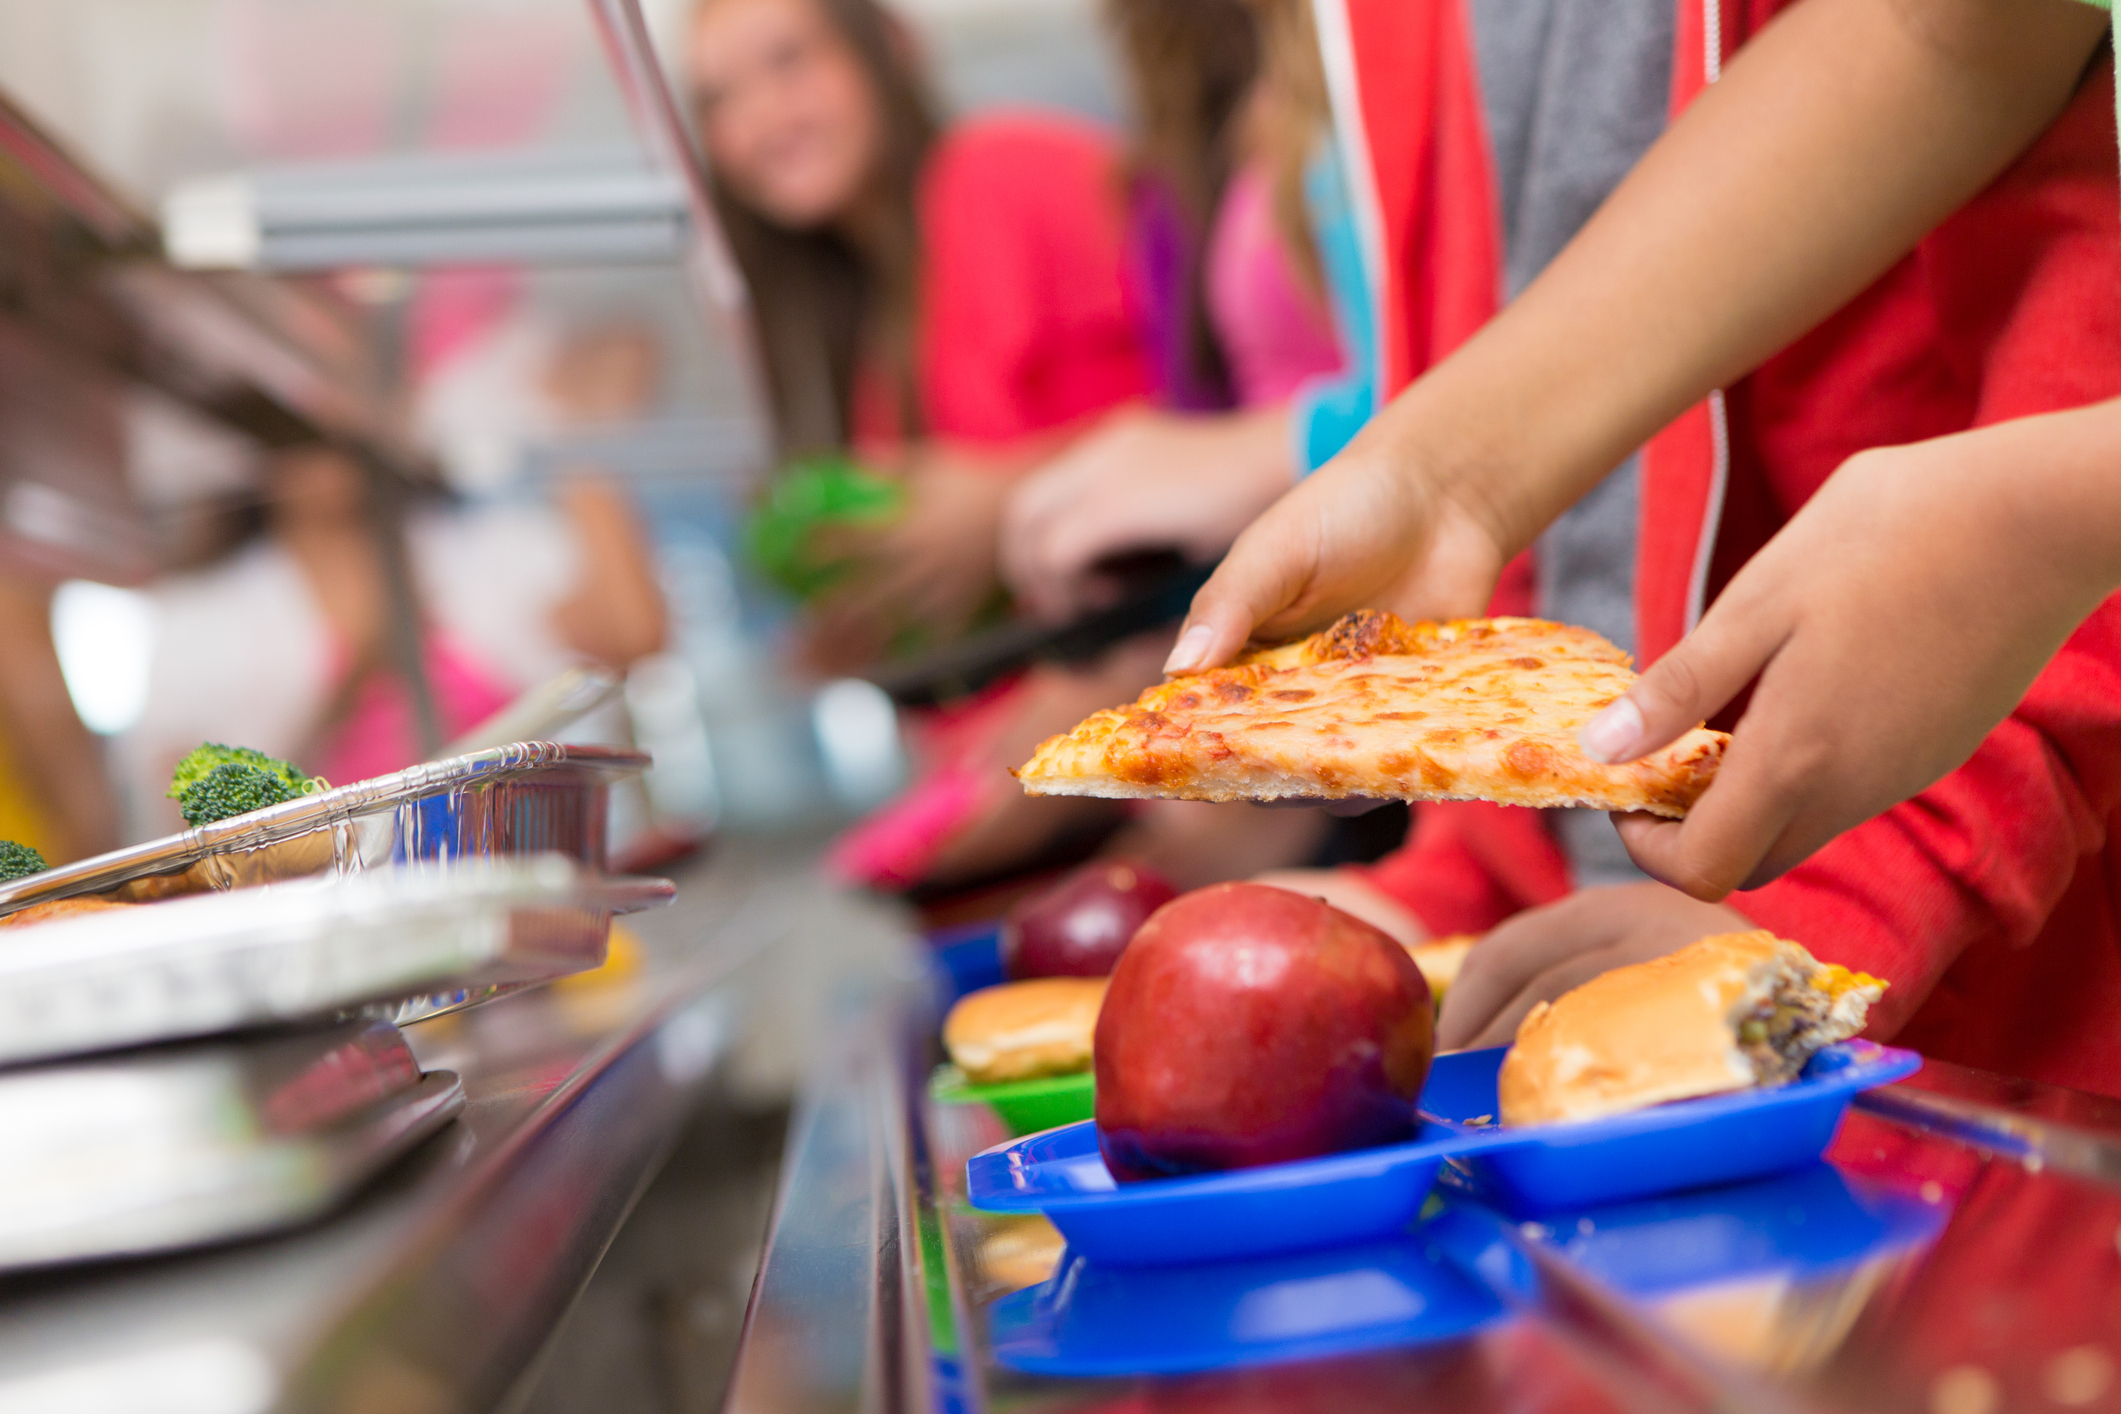 Proposed USDA Rule on School Meal Services Would Be Detrimental to Children's Health